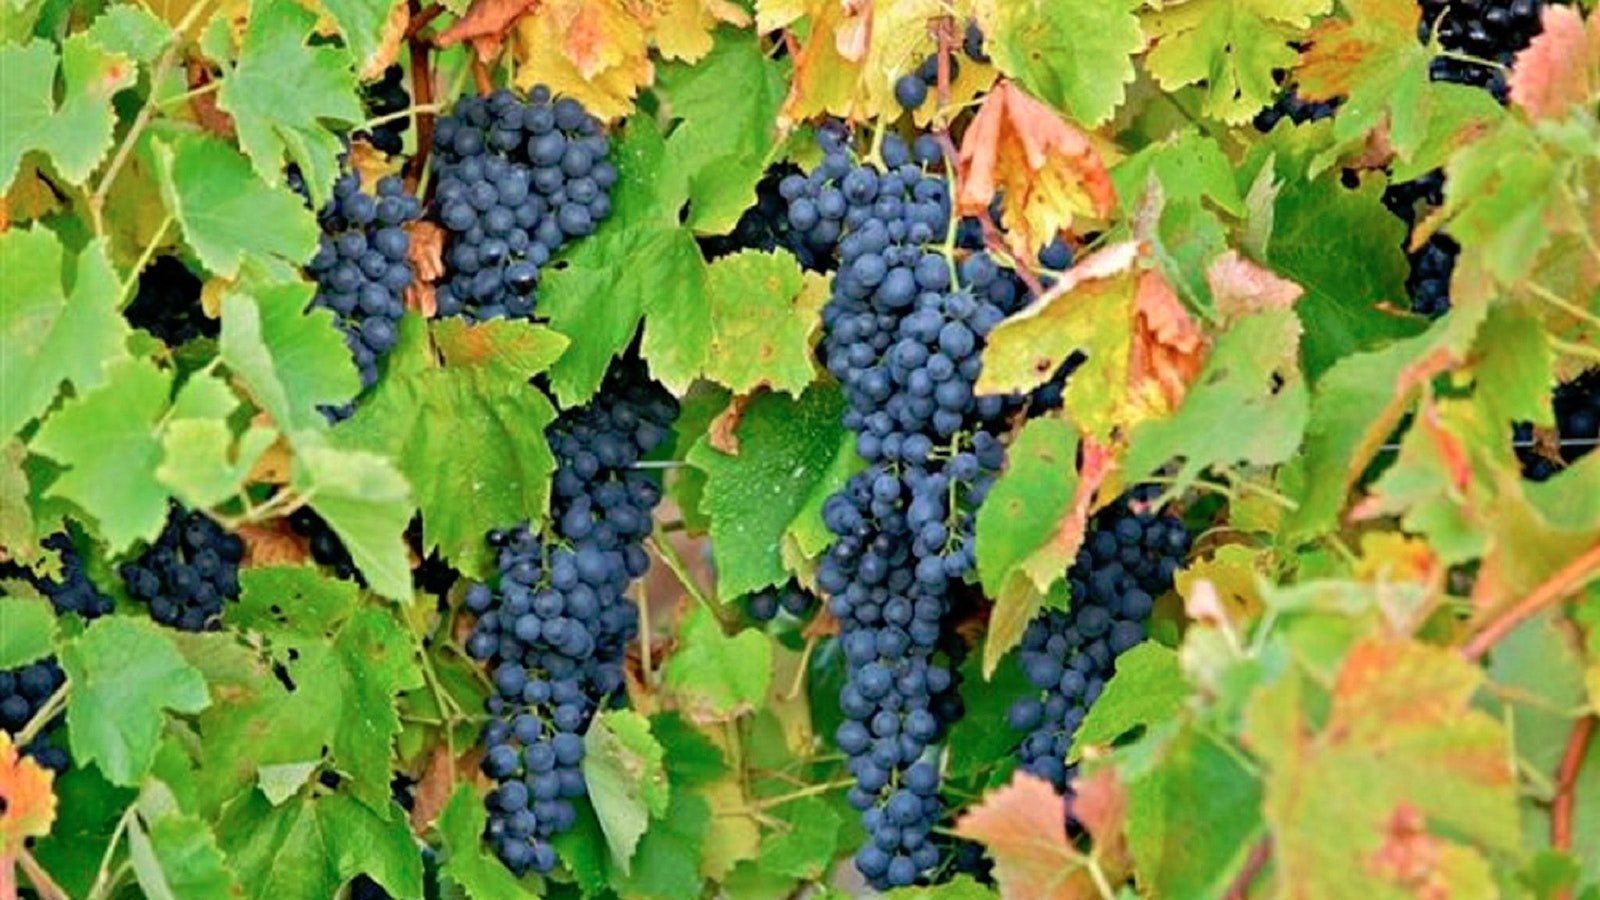 Grapes on the vine, waiting to be picked